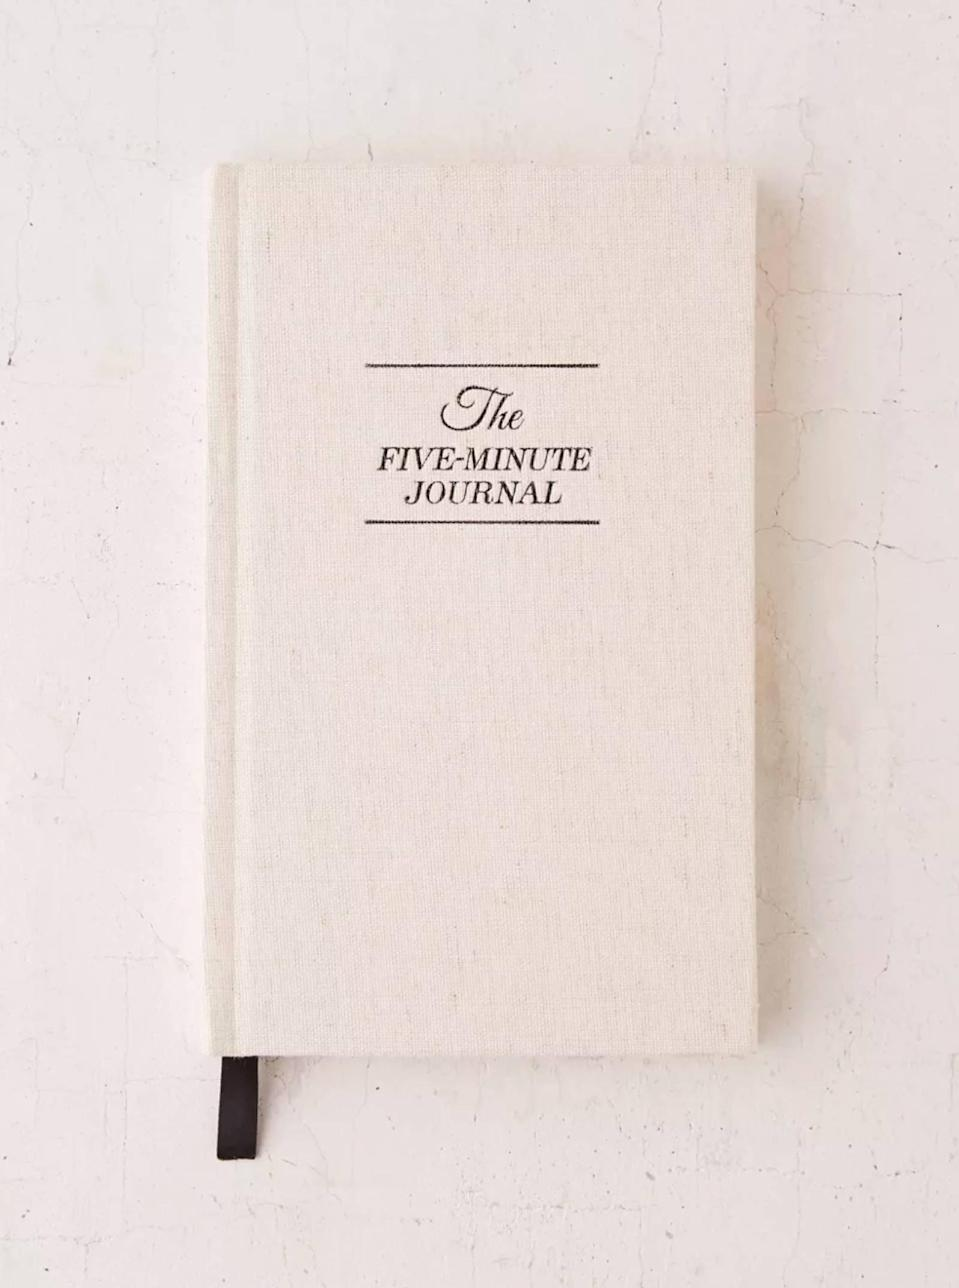 """While getting your diploma is a major life milestone, stress and confusion can strike as soon as graduation concludes. This Five-Minute Journal has positivity prompts and thoughtful tips that will help promote happiness and general well-being during this transitional time, while helping to push negative thoughts out and bring gratitude in. Shop more gratitude and manifestation journals we love <a href=""""https://www.glamour.com/gallery/gratitude-journals?mbid=synd_yahoo_rss"""" rel=""""nofollow noopener"""" target=""""_blank"""" data-ylk=""""slk:here"""" class=""""link rapid-noclick-resp"""">here</a>. $25, Urban Outfitters. <a href=""""https://www.urbanoutfitters.com/shop/the-five-minute-journal-by-intelligent-change?"""" rel=""""nofollow noopener"""" target=""""_blank"""" data-ylk=""""slk:Get it now!"""" class=""""link rapid-noclick-resp"""">Get it now!</a>"""